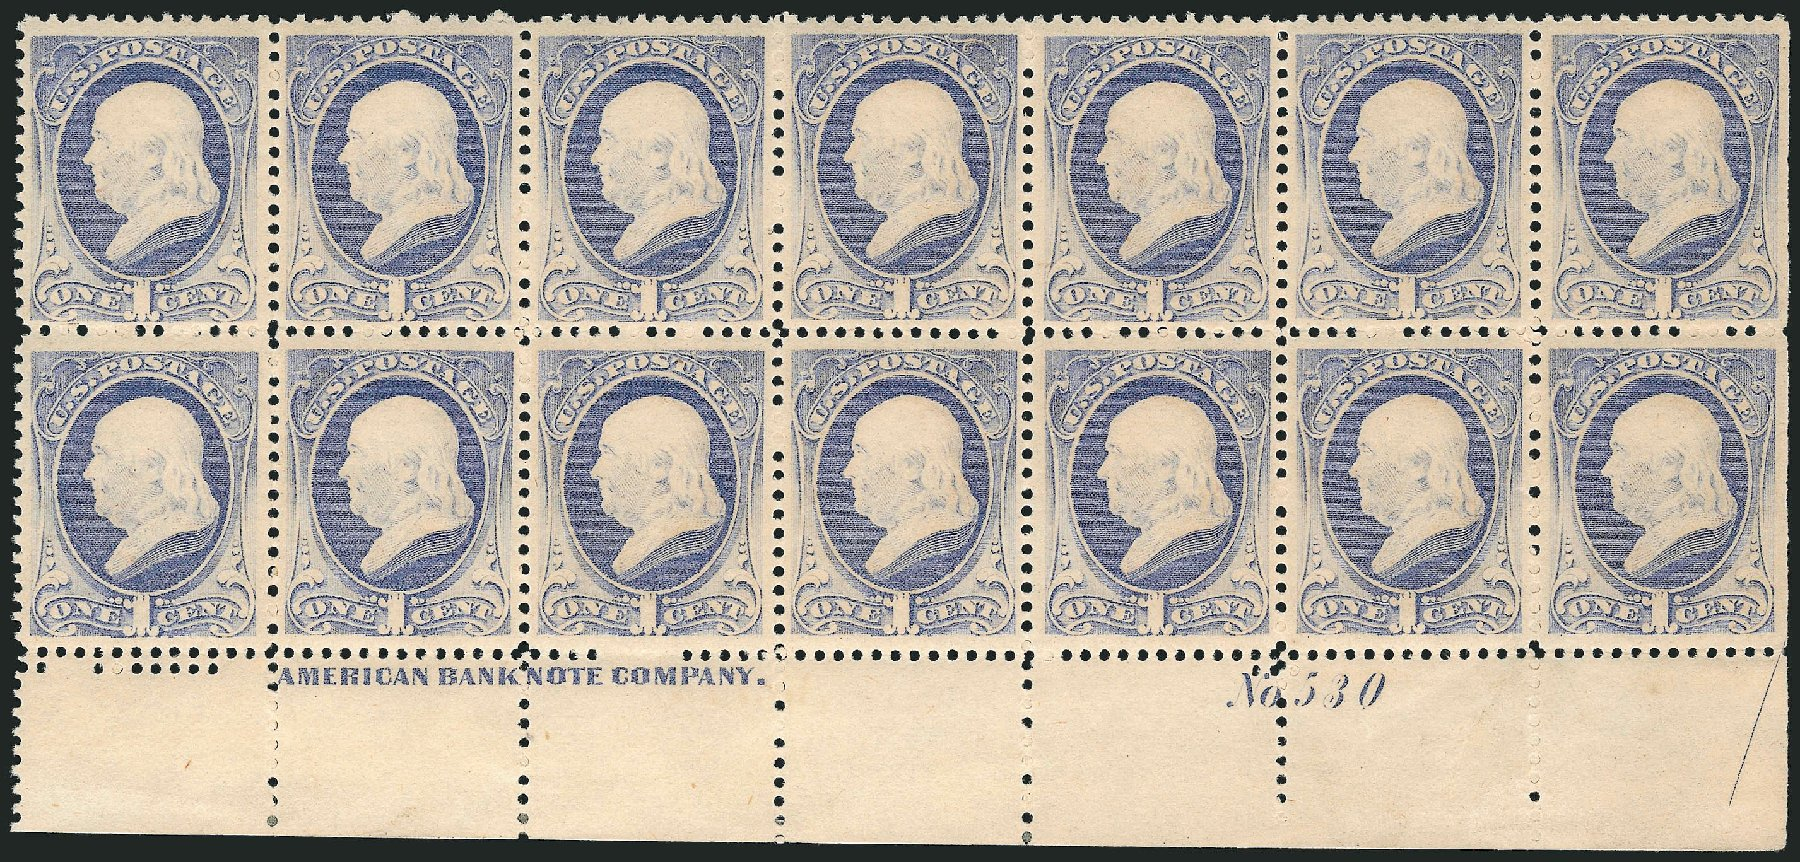 US Stamp Price Scott Cat. 206 - 1882 1c Franklin. Robert Siegel Auction Galleries, Apr 2015, Sale 1096, Lot 360